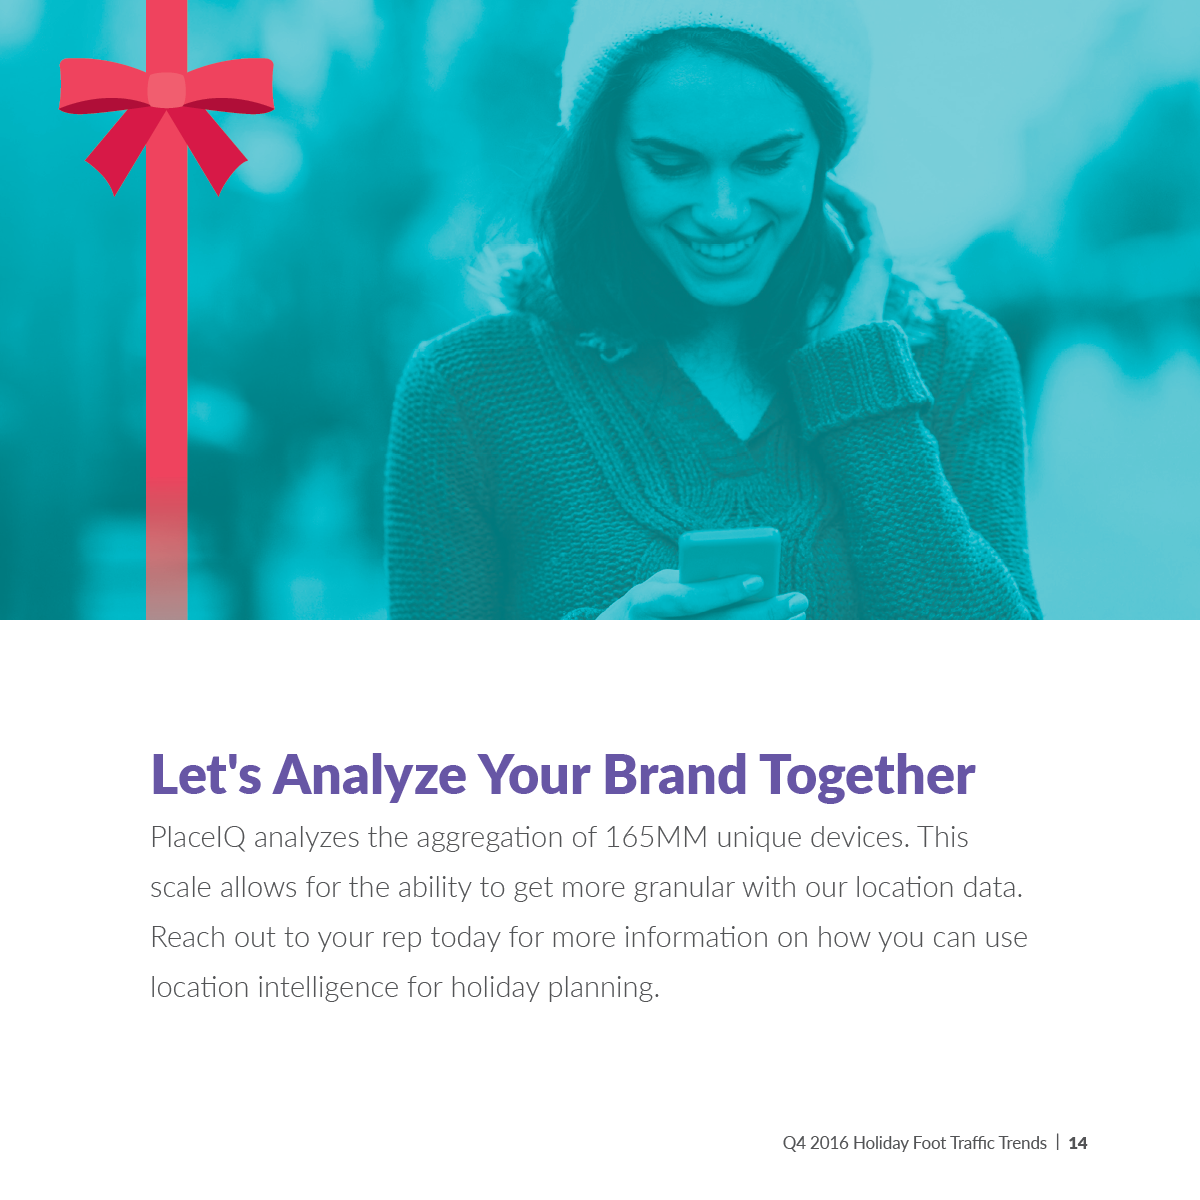 Let's analyze your brand together